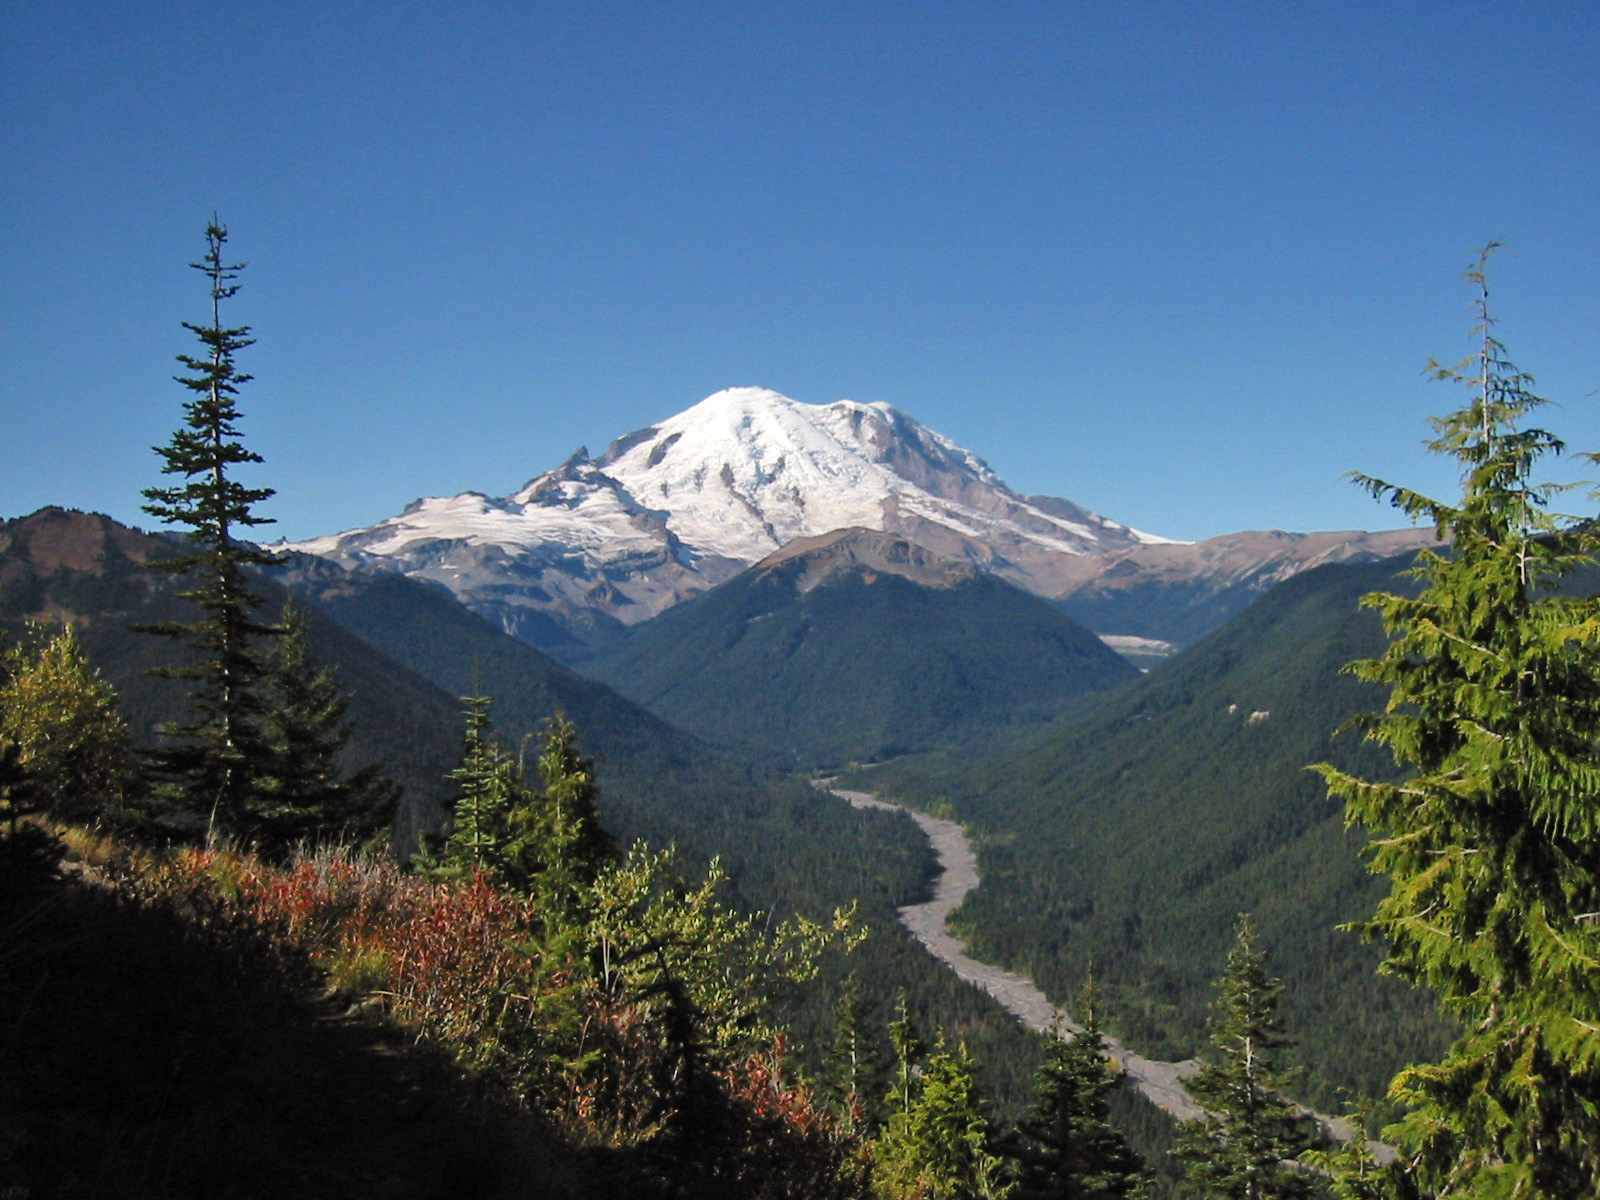 Click image for larger version  Name:Mount_Rainier_7437.JPG Views:58 Size:558.8 KB ID:224630